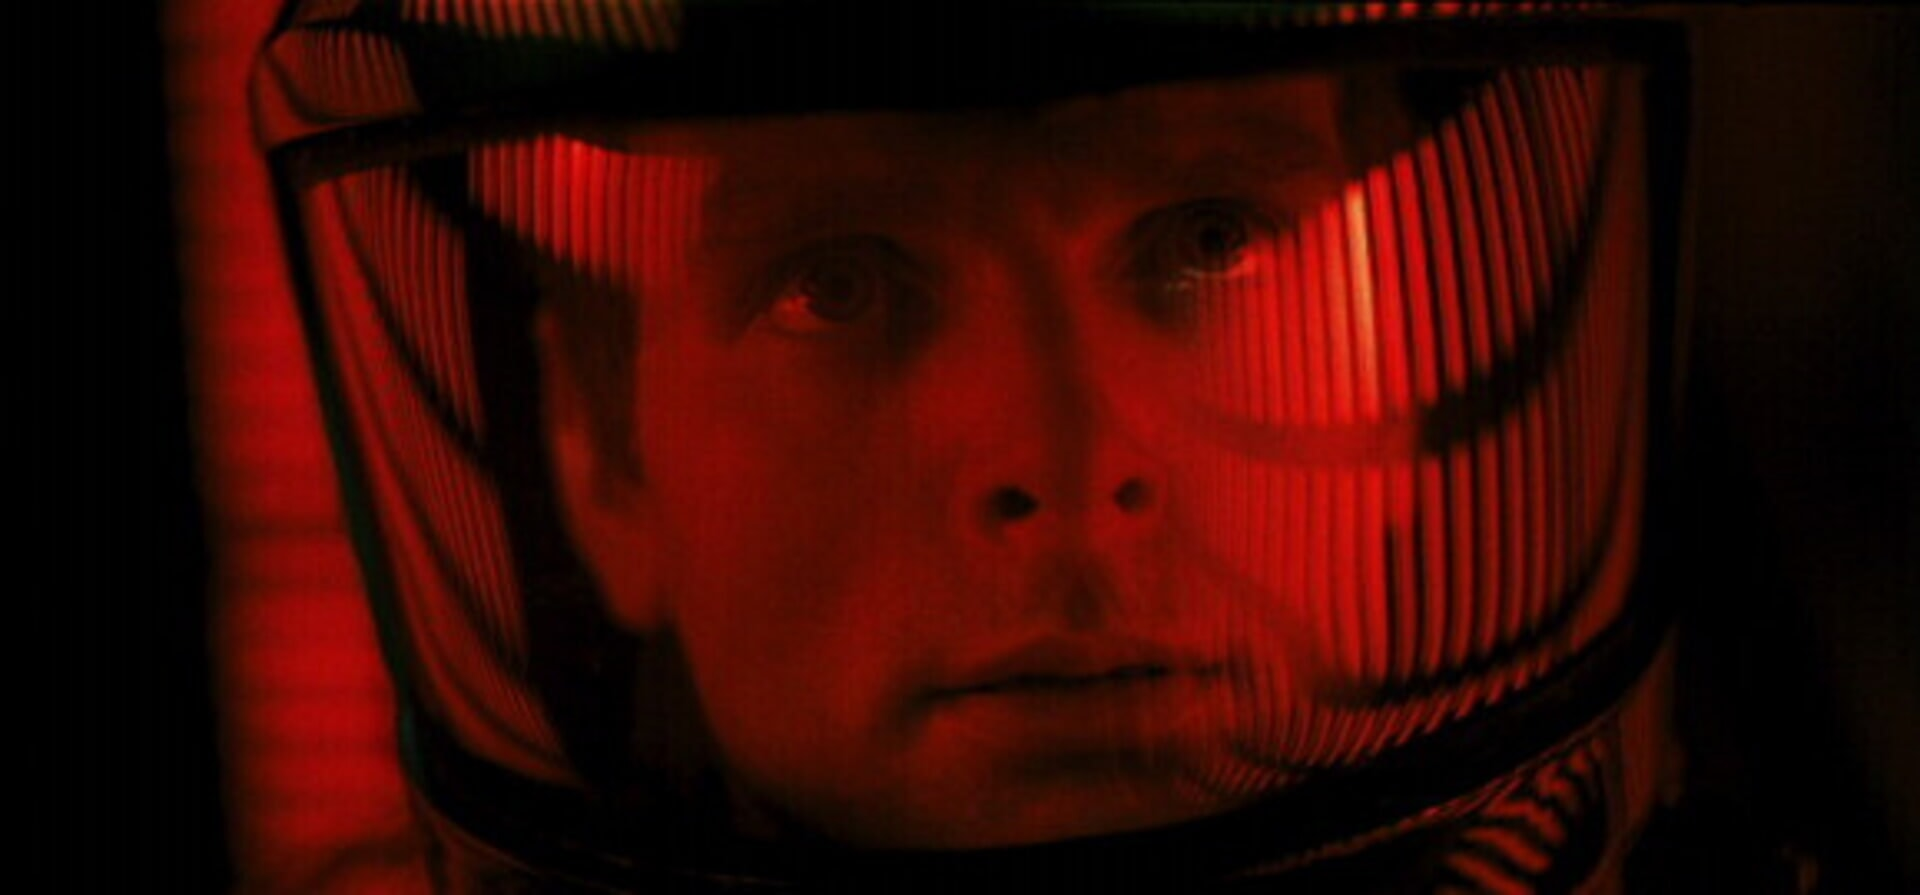 2001: A Space Odyssey - Image 1